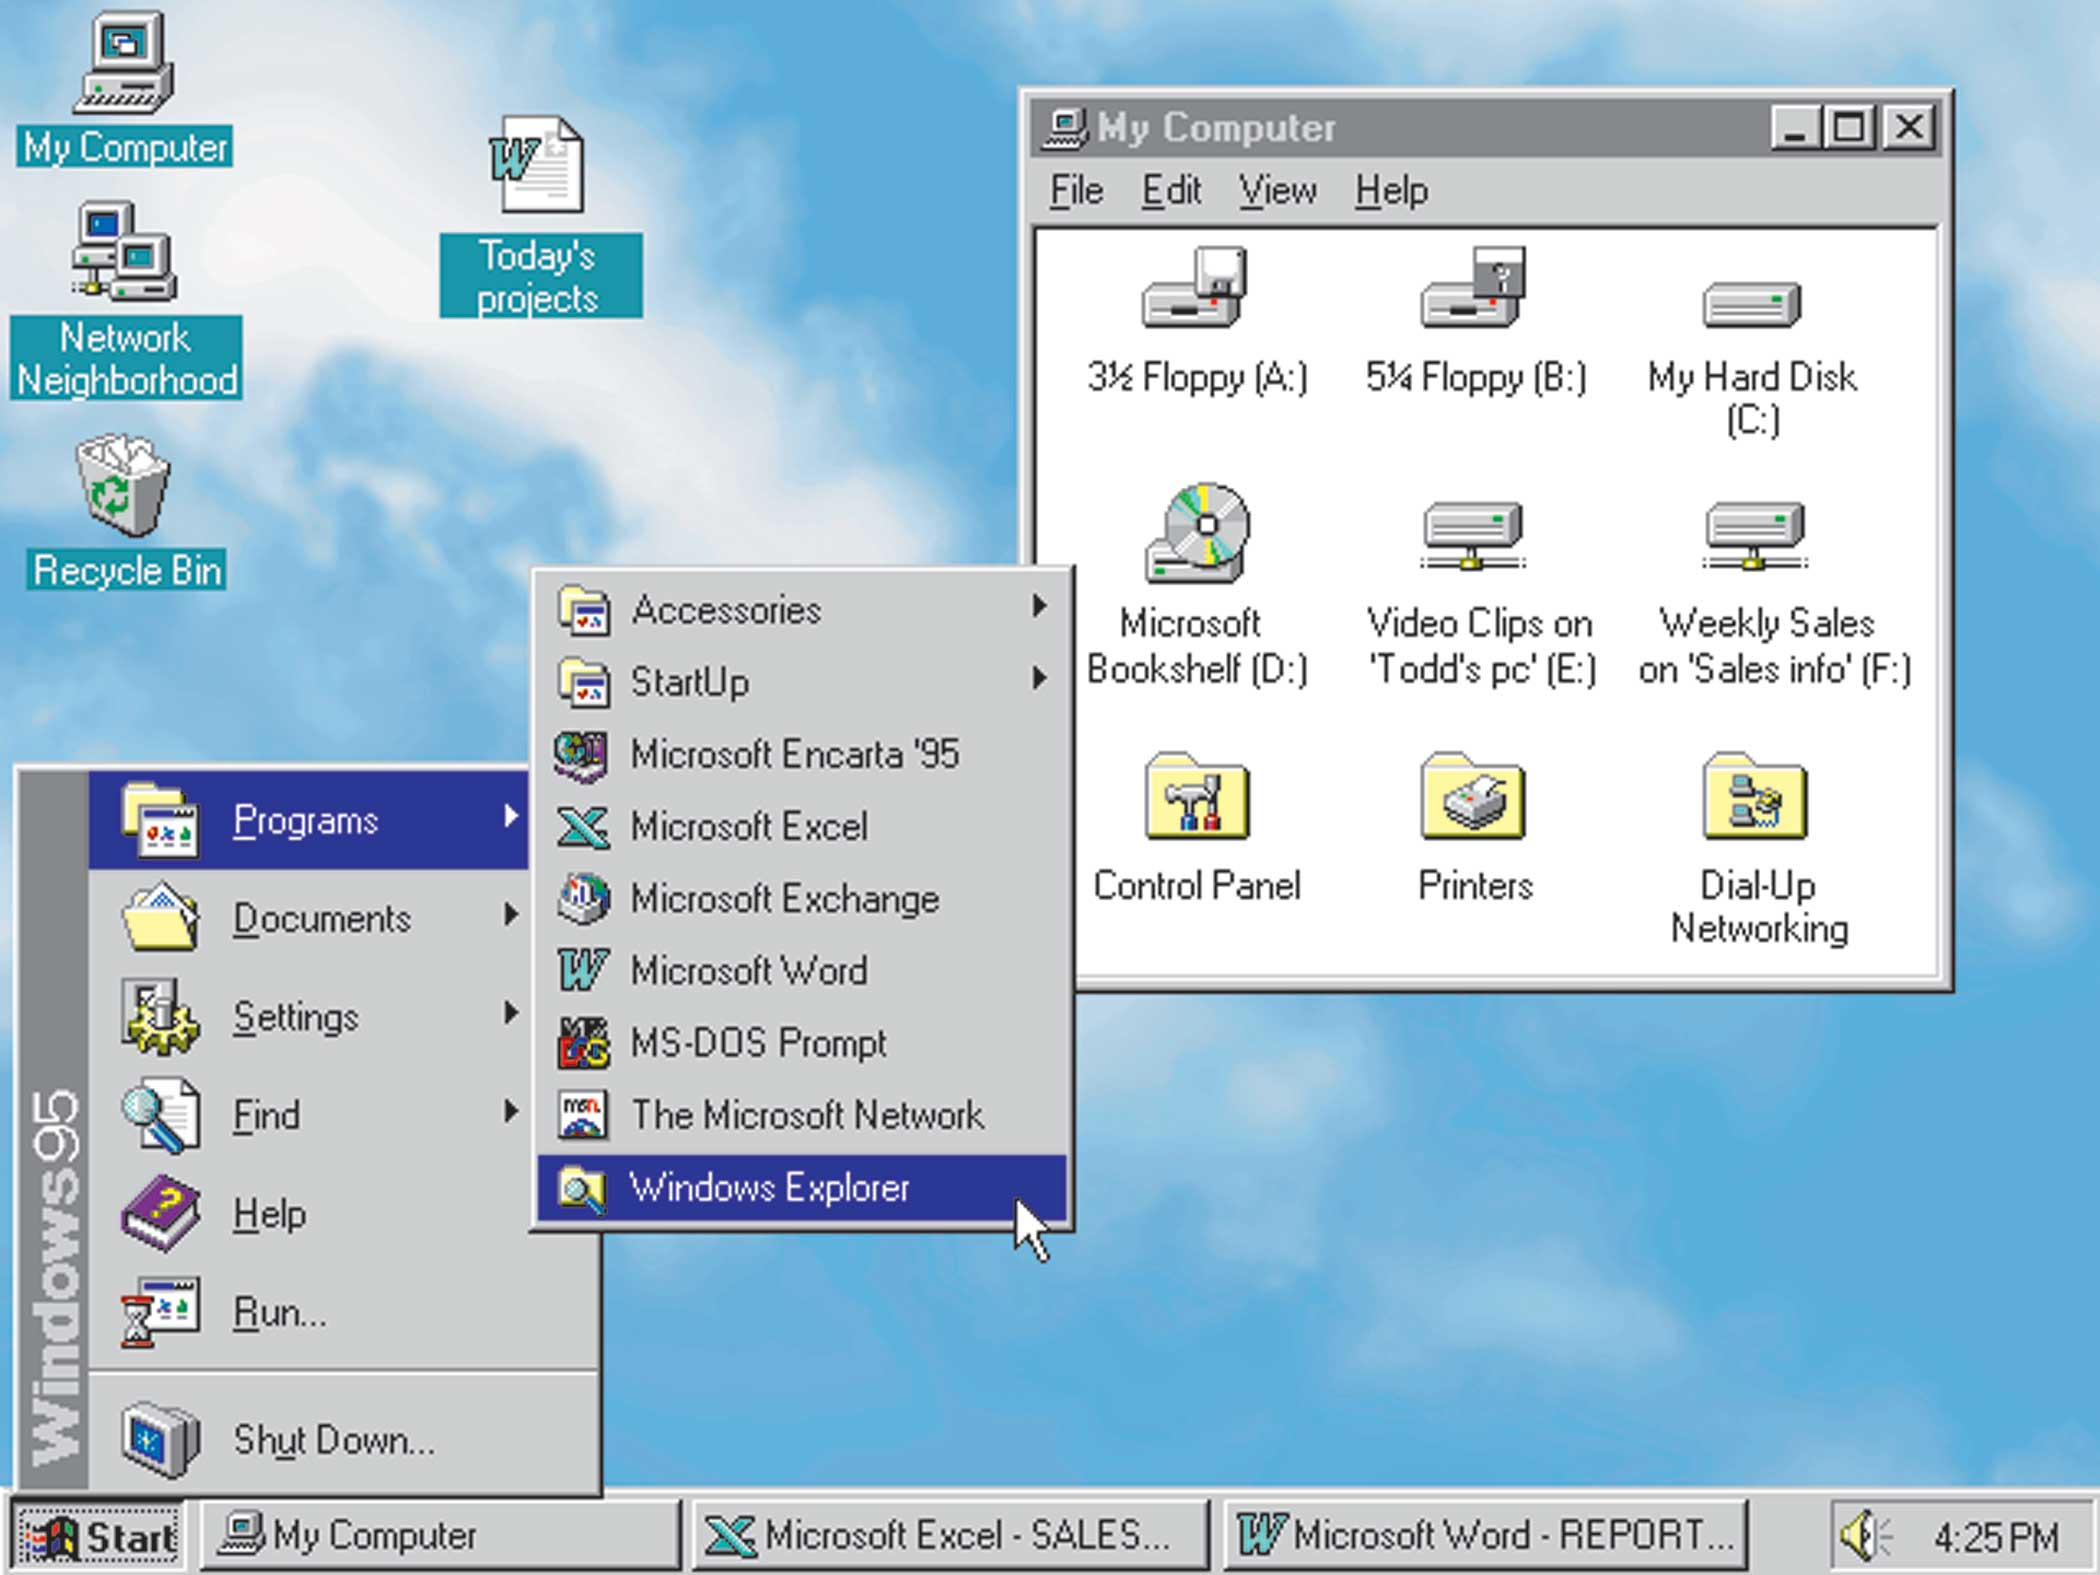 <strong>Windows 95 </strong> released on August 24, 1995, equipping users with their first Start menu, as well as minimize and maximize buttons. Roughly 8 in 10 of the world's PC's were running Windows at the time of its release.